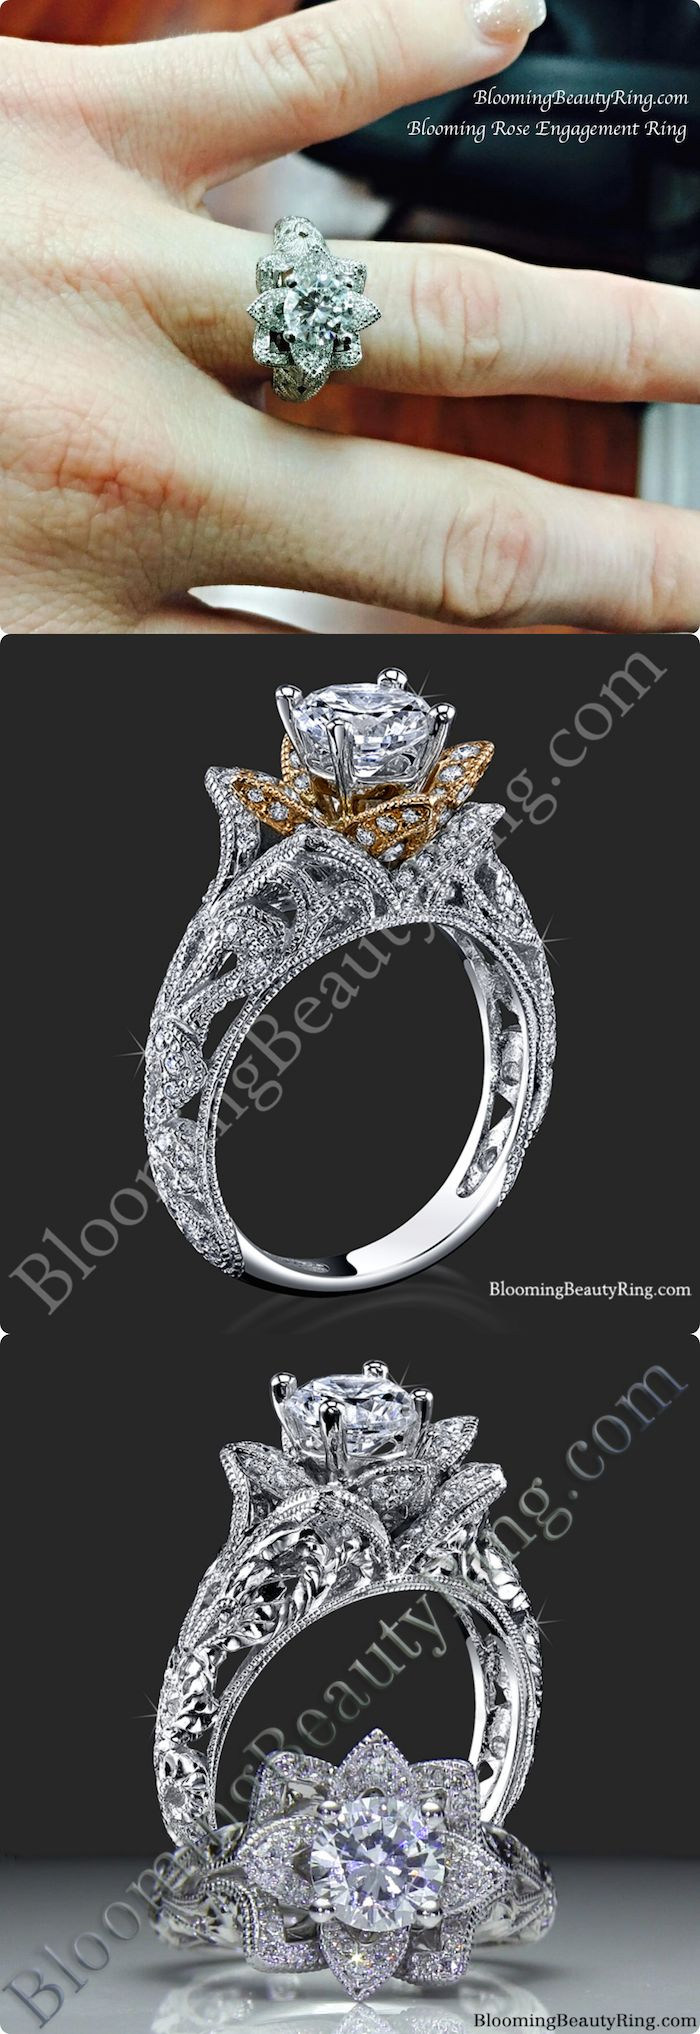 band size dainty us dhgate deco unique engagement shape com rings winding silver rbvajfmt cut ring lotus flower product cushion from